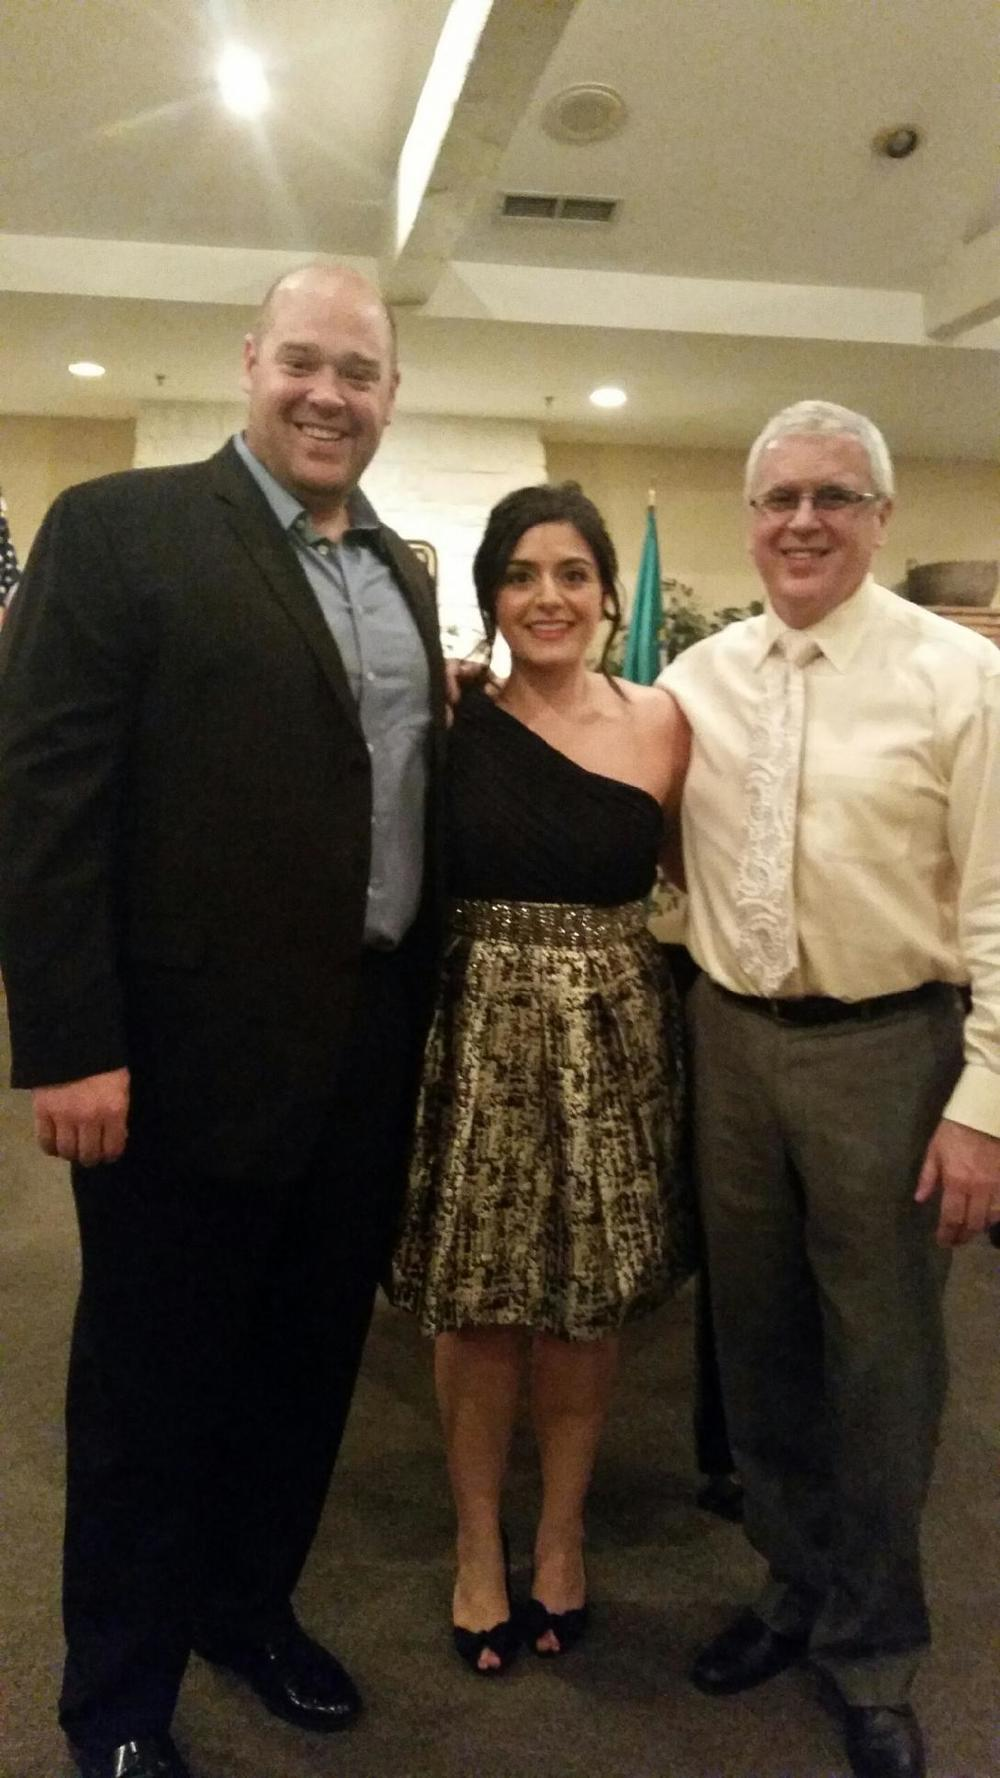 Brendan Tuohy (tenor), me, and Noel Koran (General Director, Tacoma Opera).